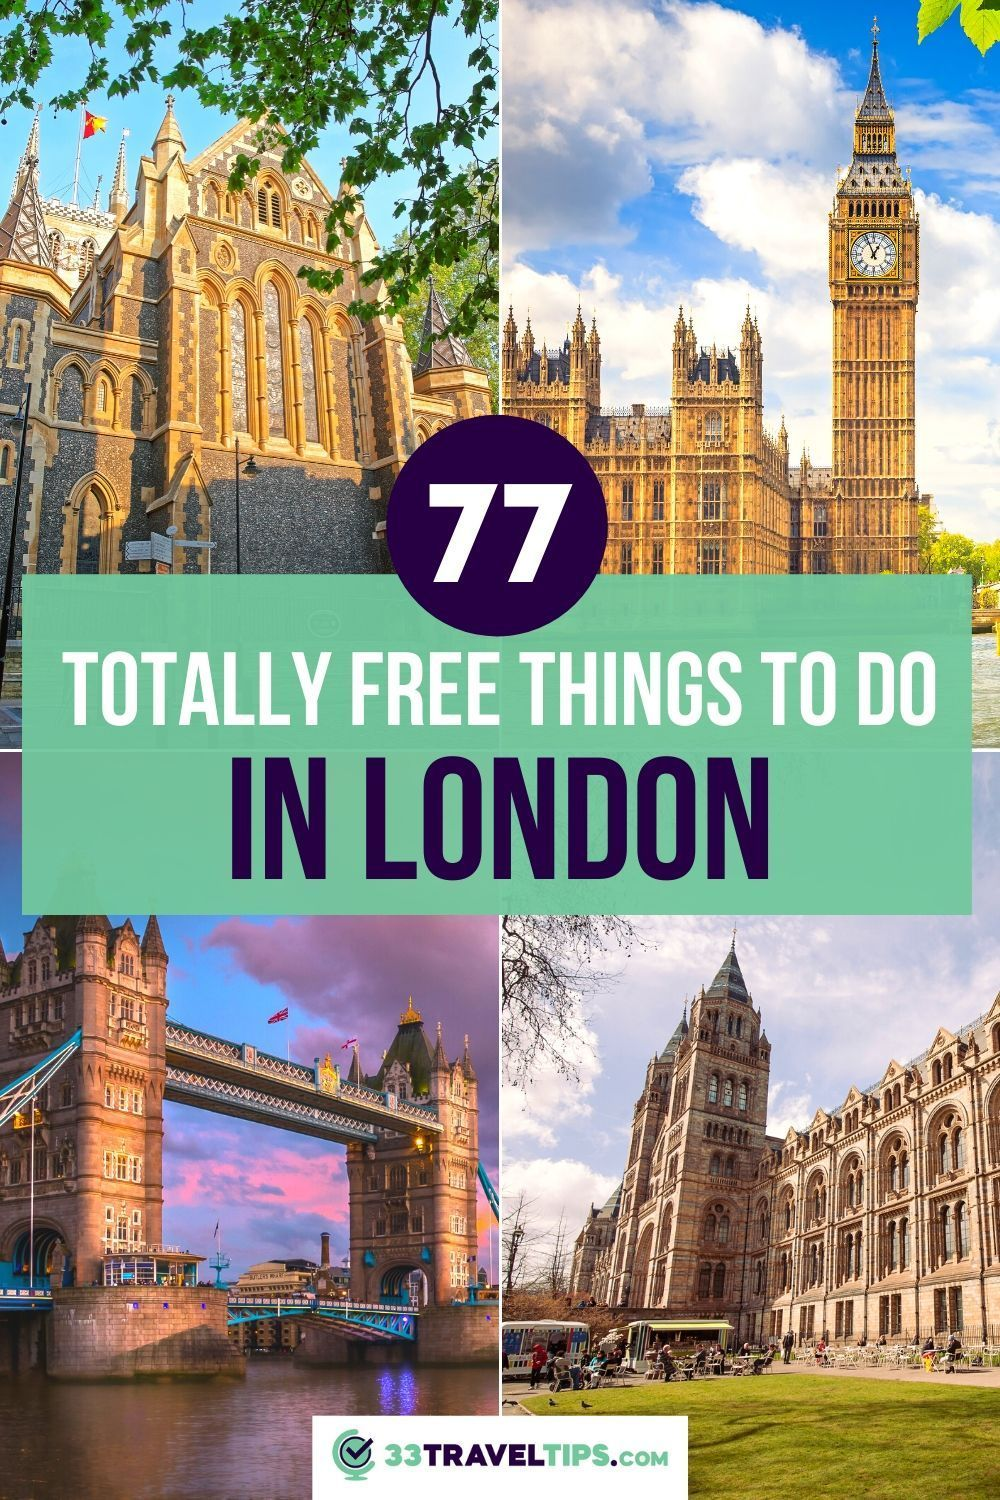 , 77 Totally Free Things to Do in London, My Travels Blog 2020, My Travels Blog 2020